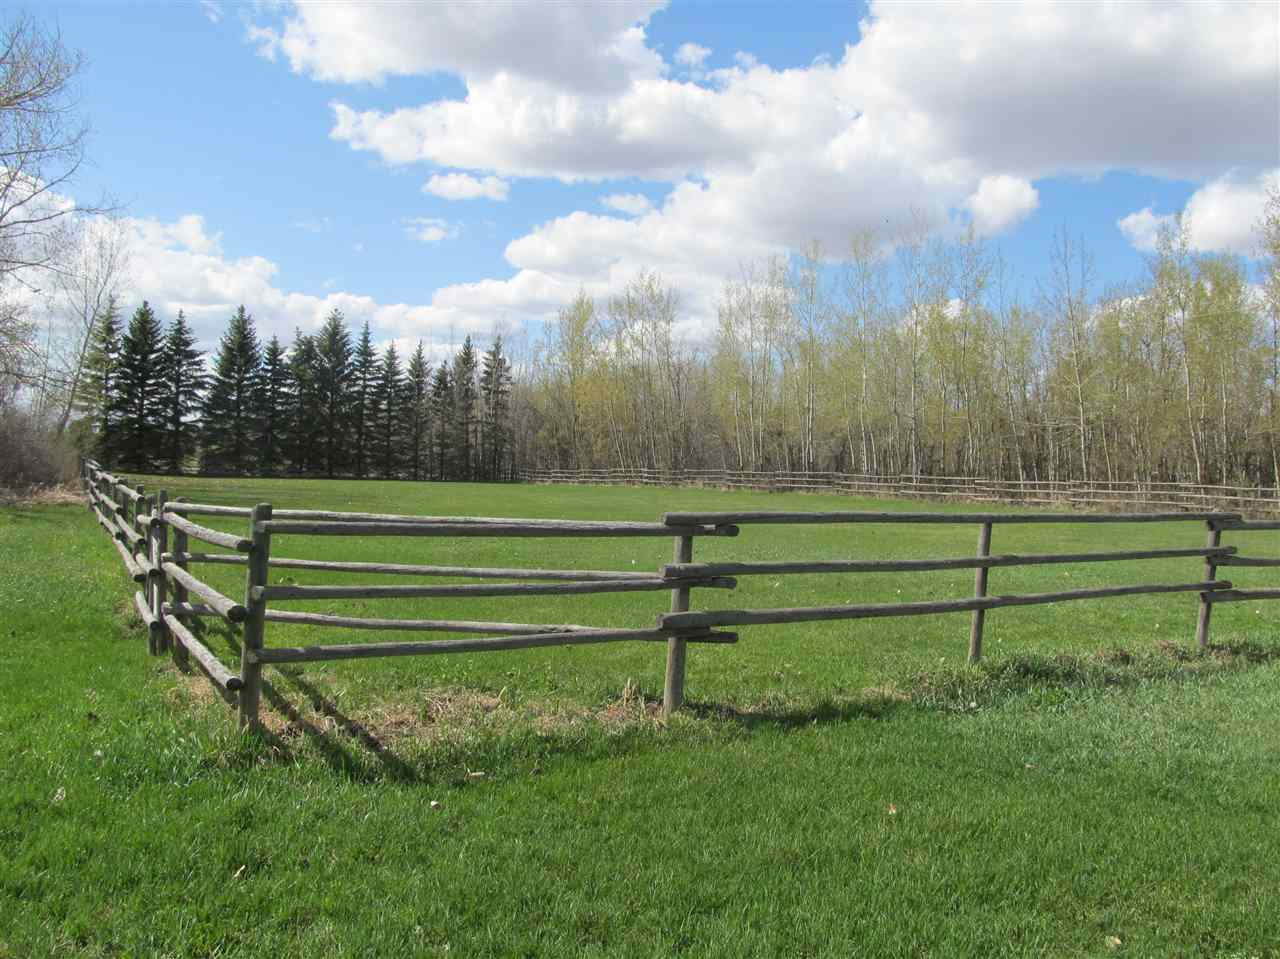 Photo 24: 25308 Twp Rd 570: Rural Sturgeon County House for sale : MLS(r) # E4063269